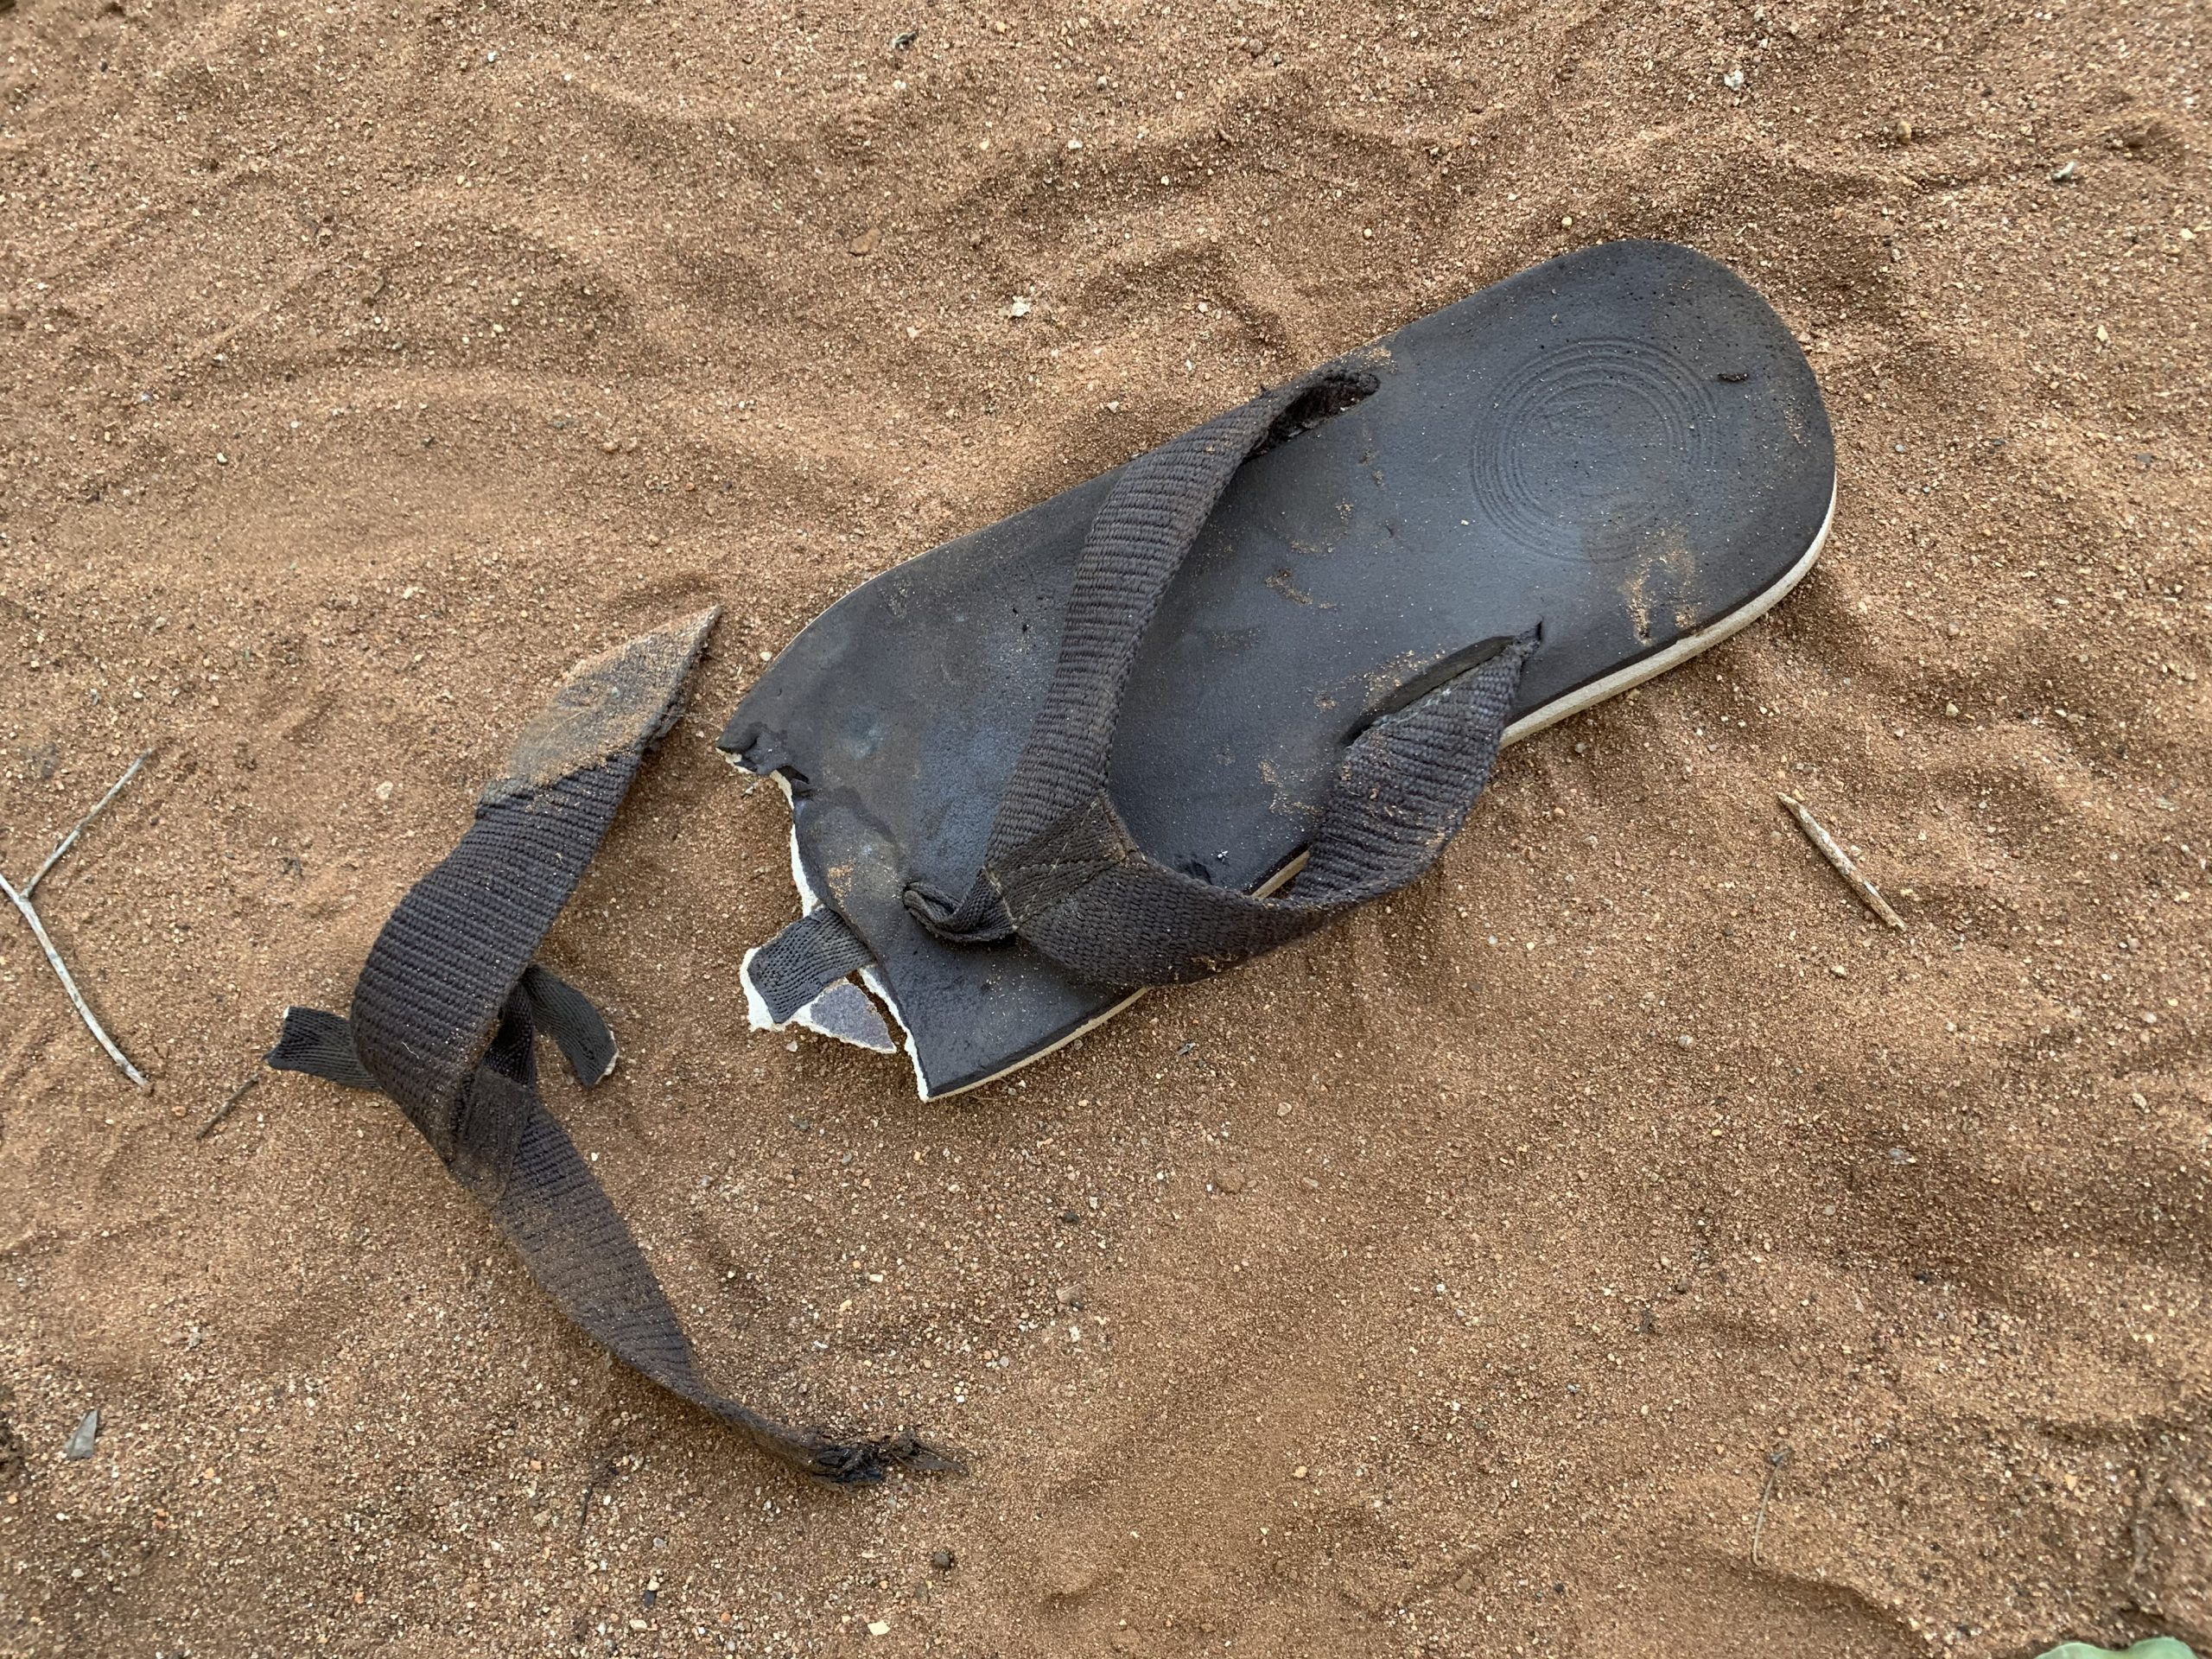 Honey, a hyena ate your flip flop